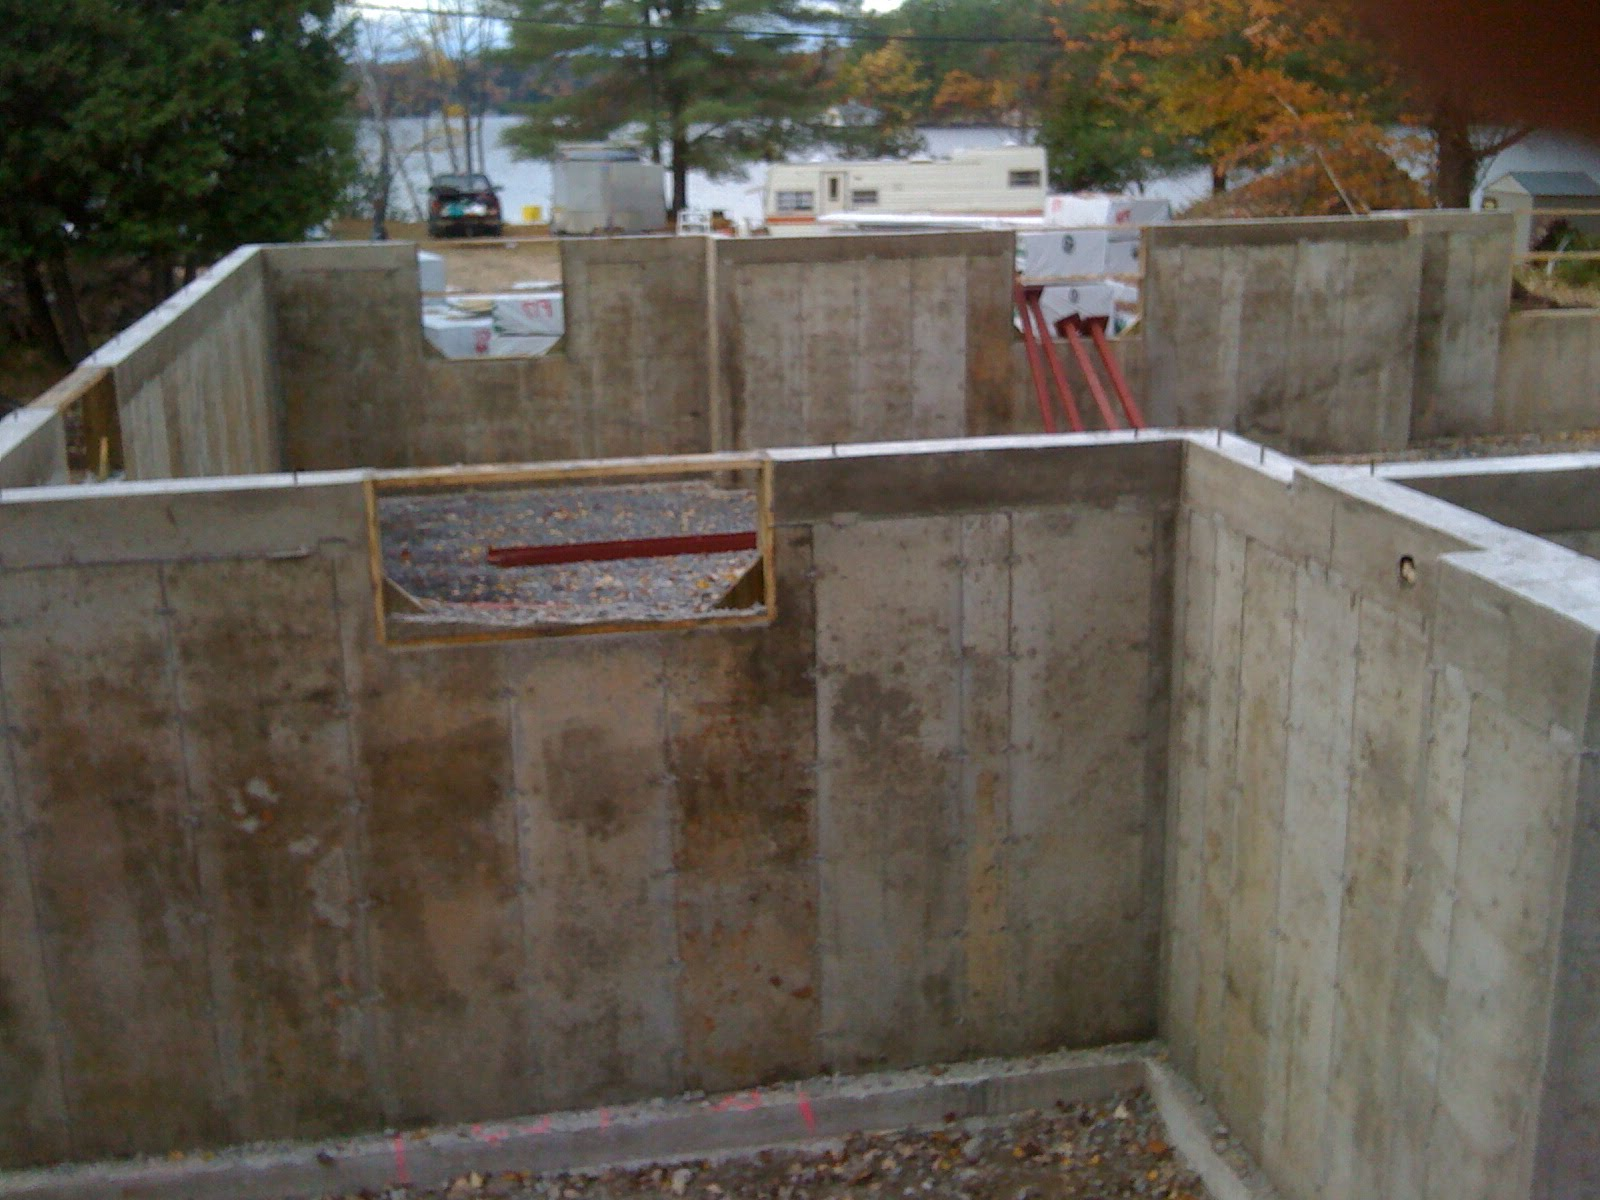 Tiger 39 s den concrete basement poured forms removed for Poured concrete basement walls